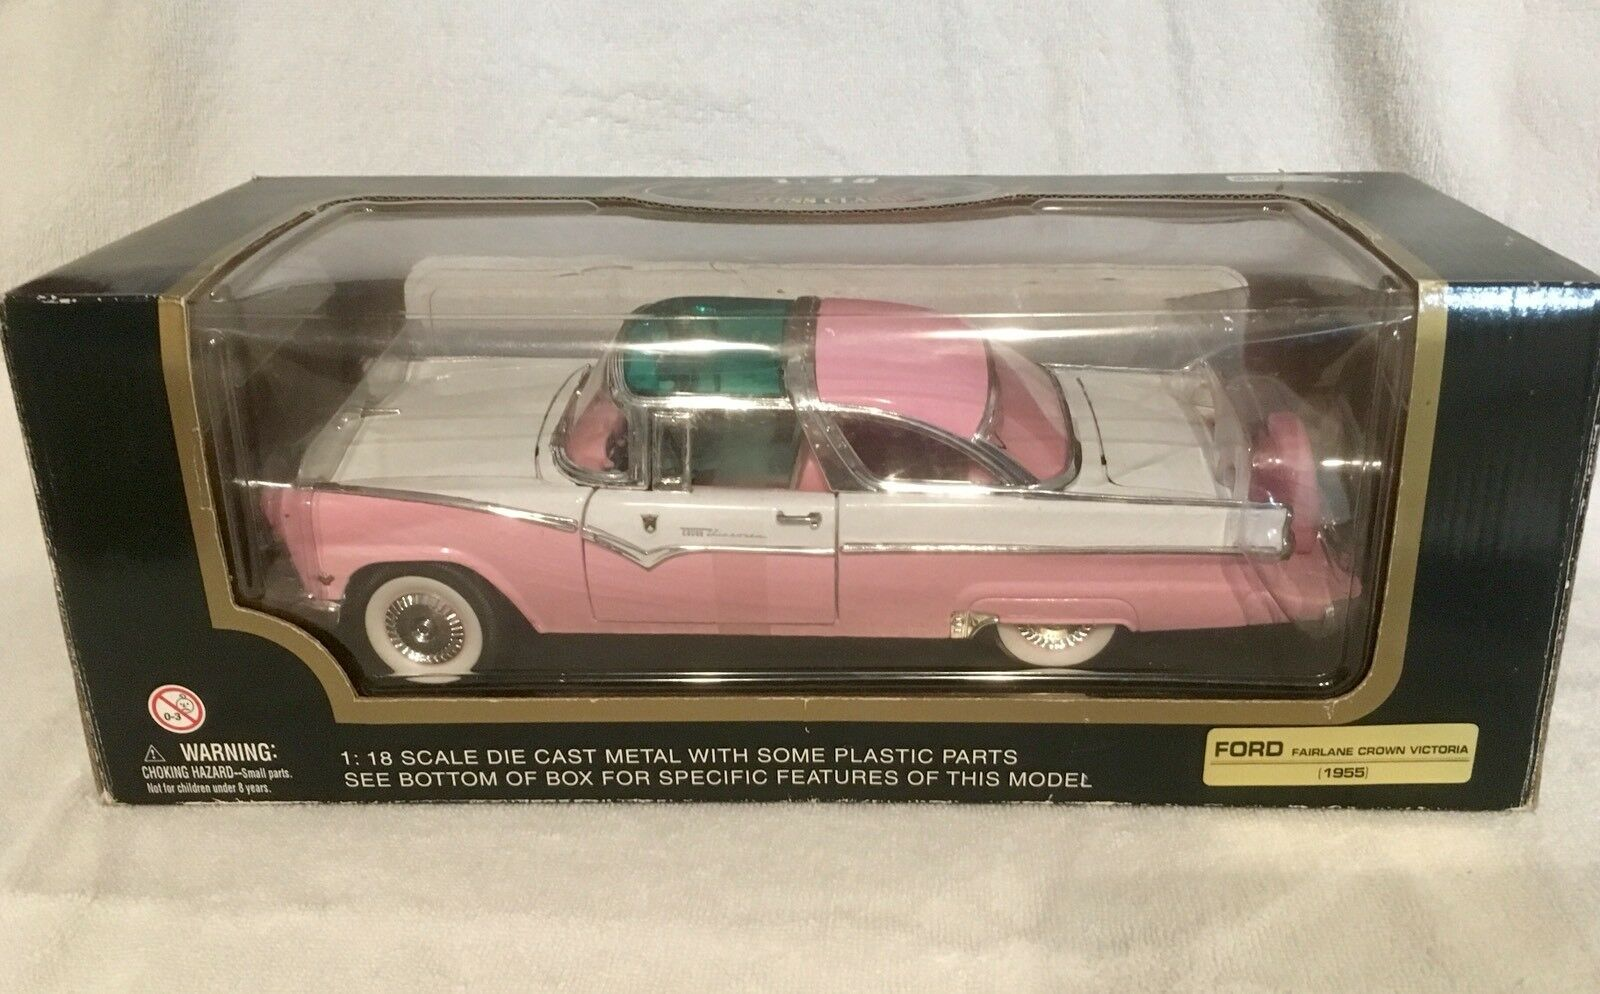 VINTAGE MINT IN BOX 1955 FORD FAIRLANE CROWN VICTORIA 1 18 SCALE MODEL